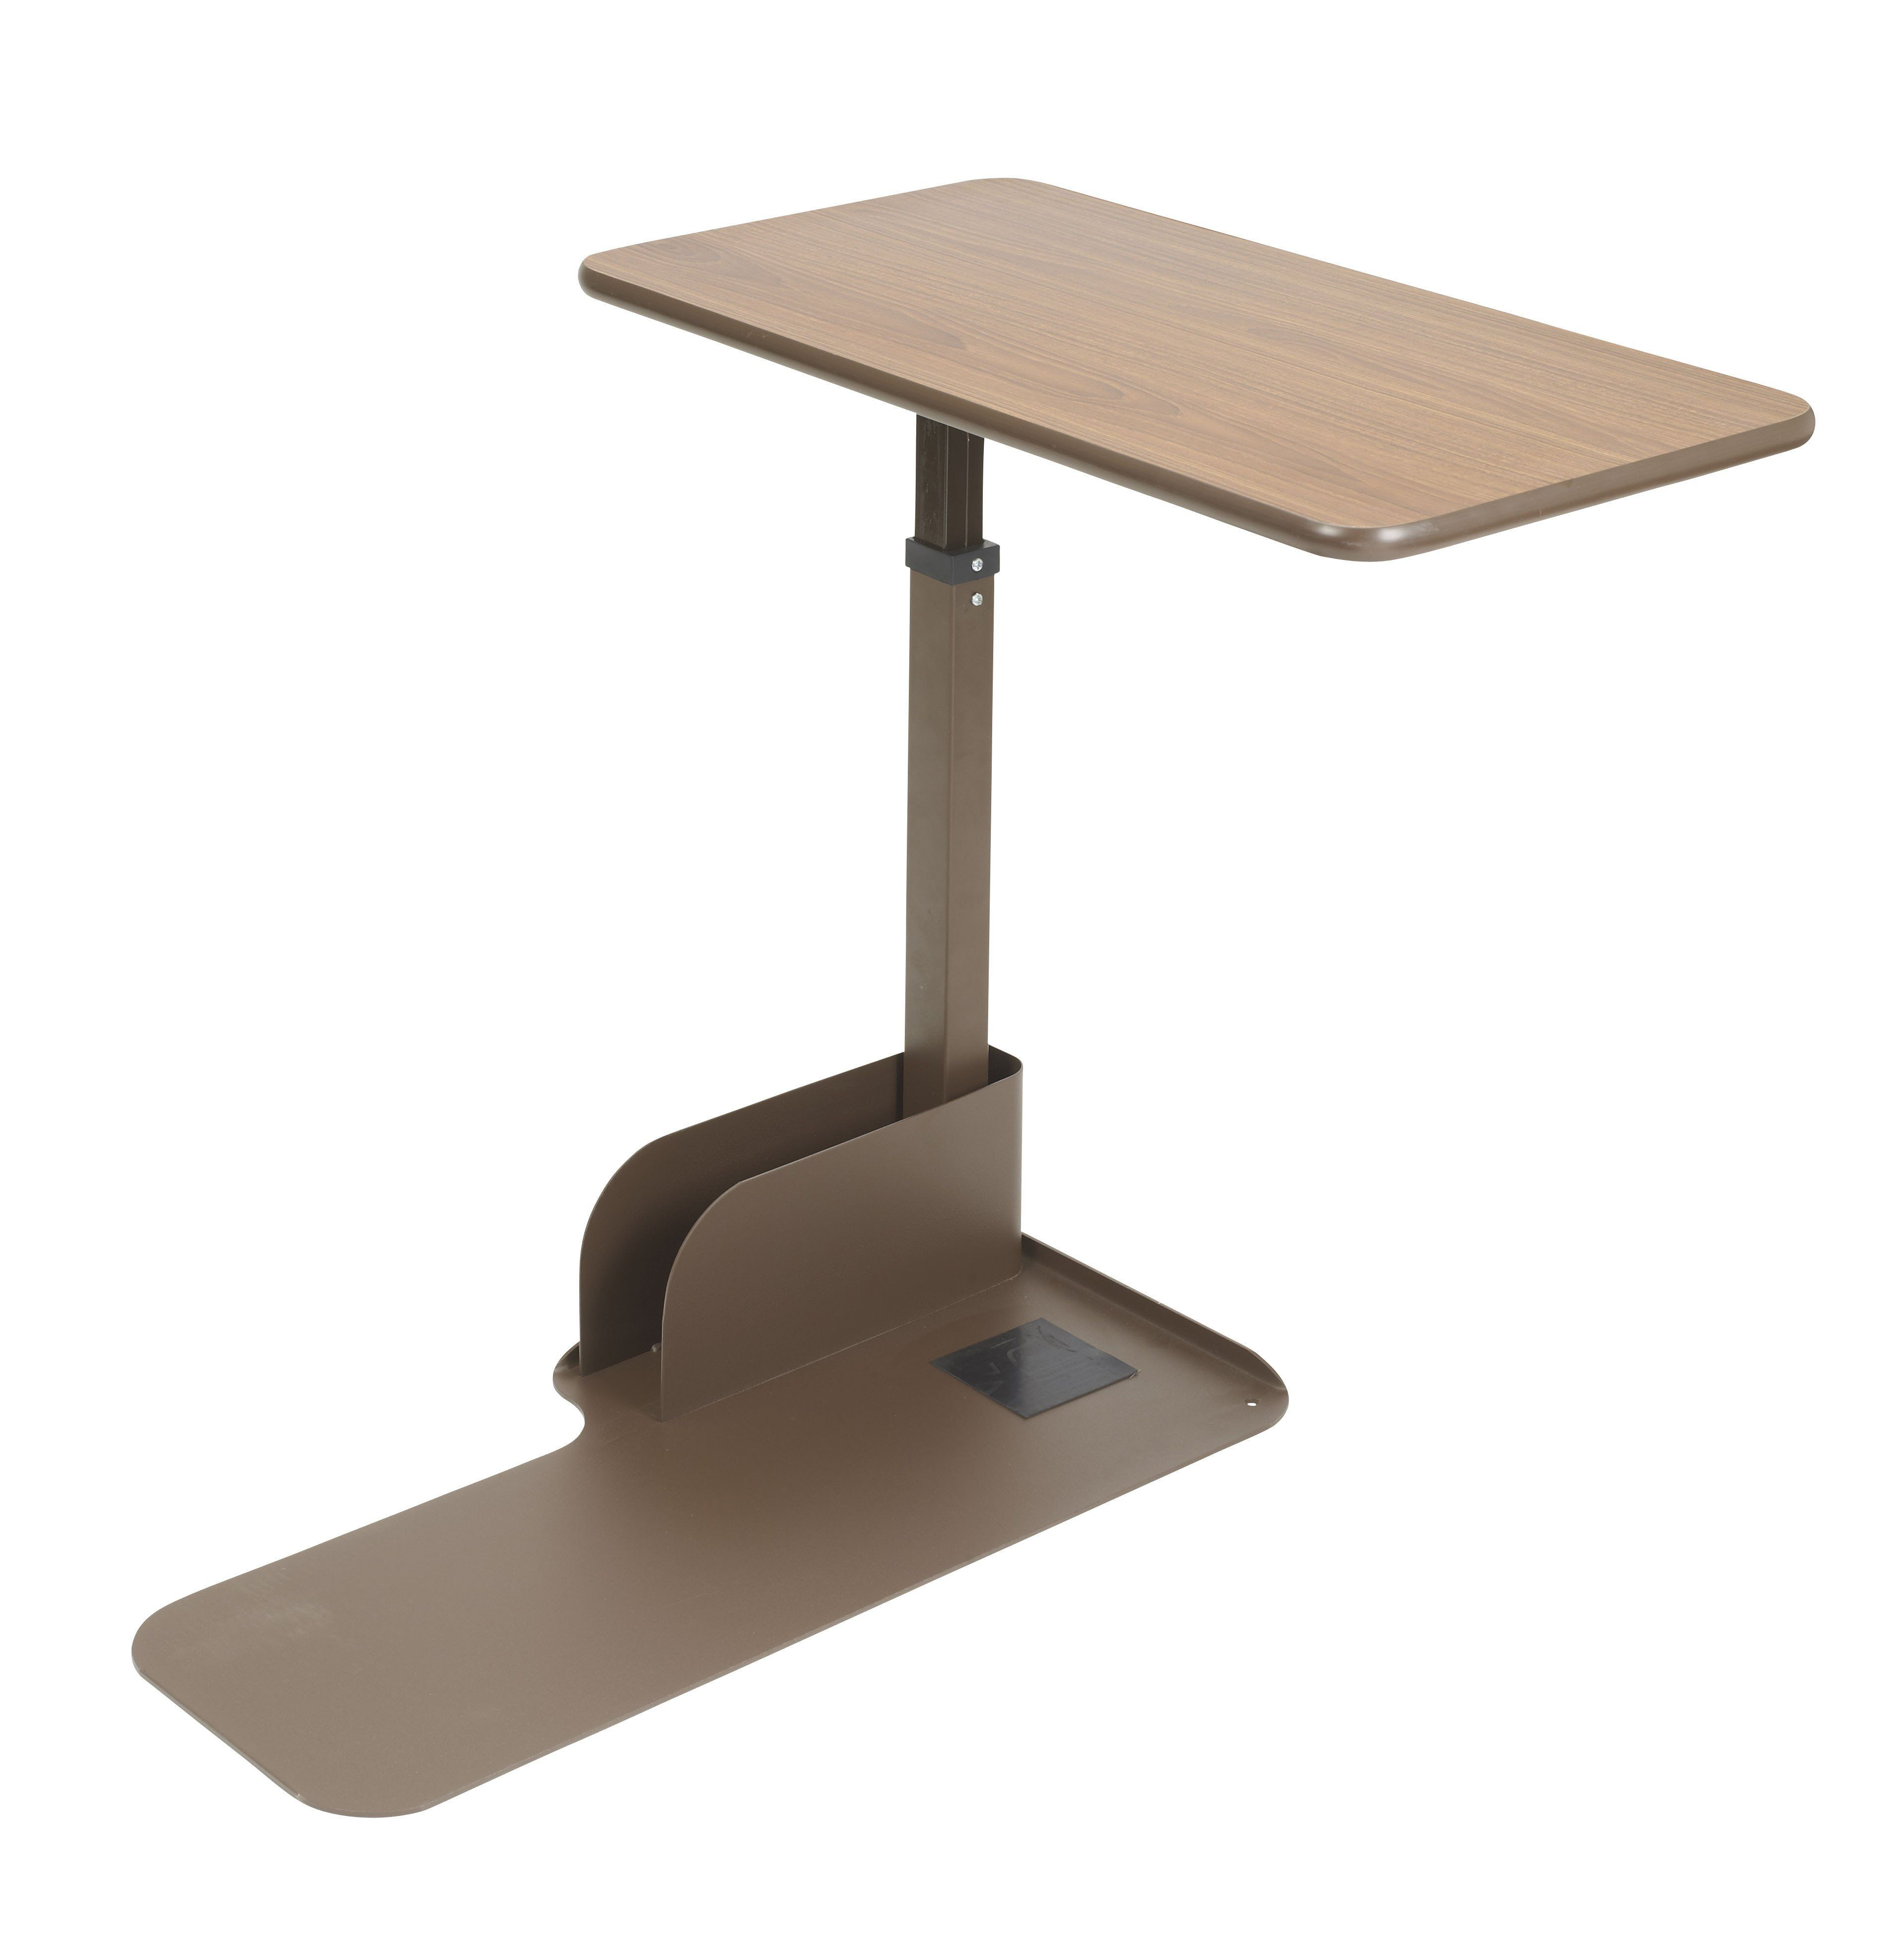 Drive 13085ln Seat Lift Chair Overbed Table, Left Side